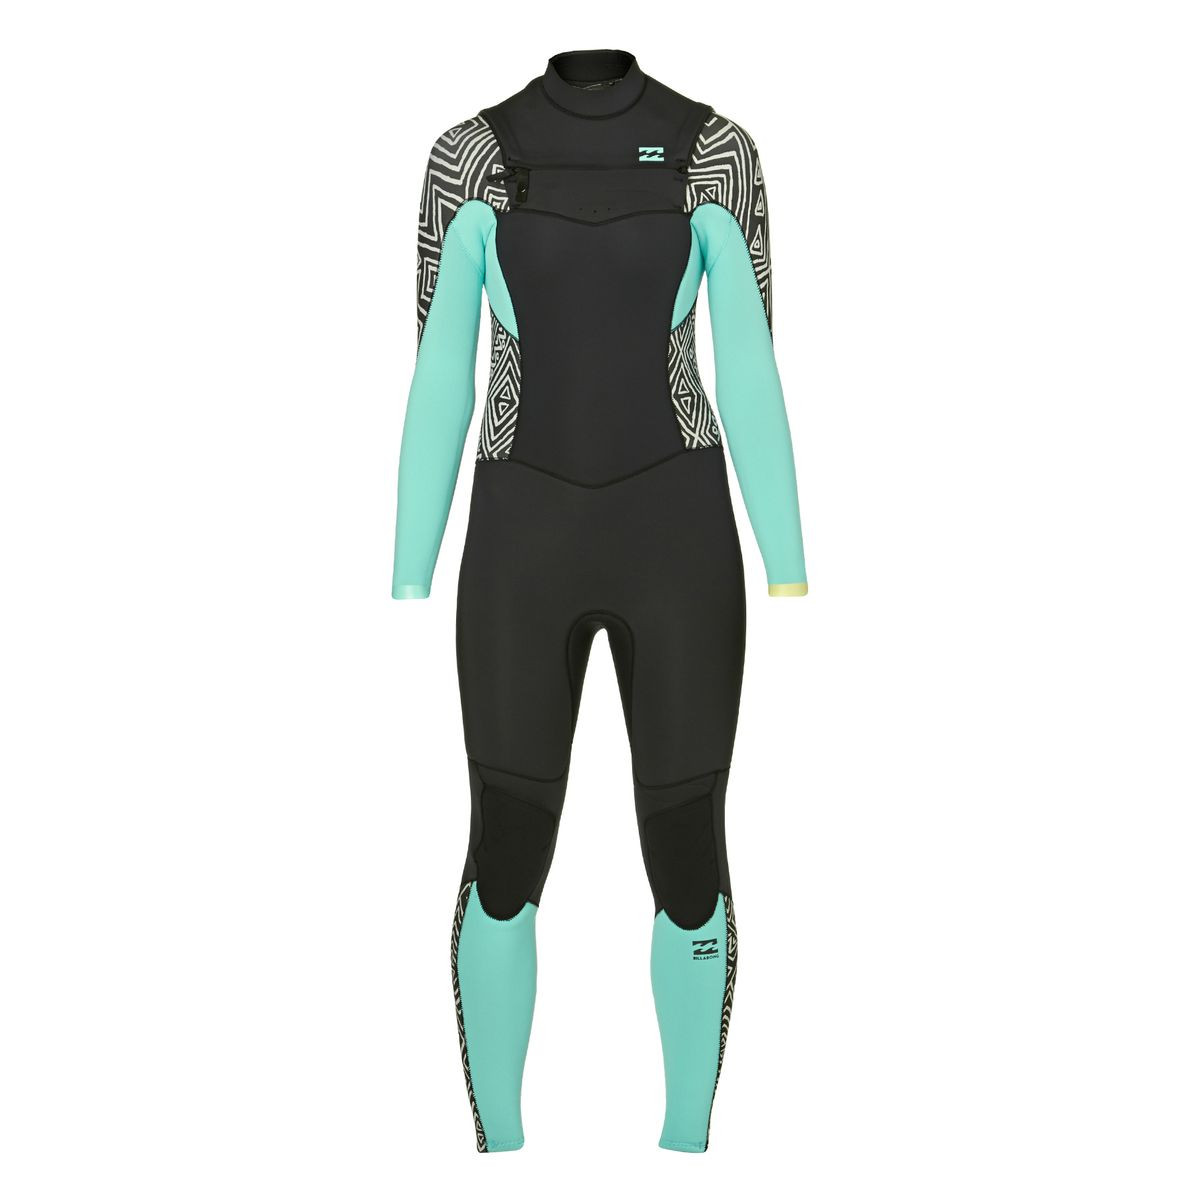 Billabong Womens Synergy 4/3mm 2017 Chest Zip Wetsuit - Geo Diamond